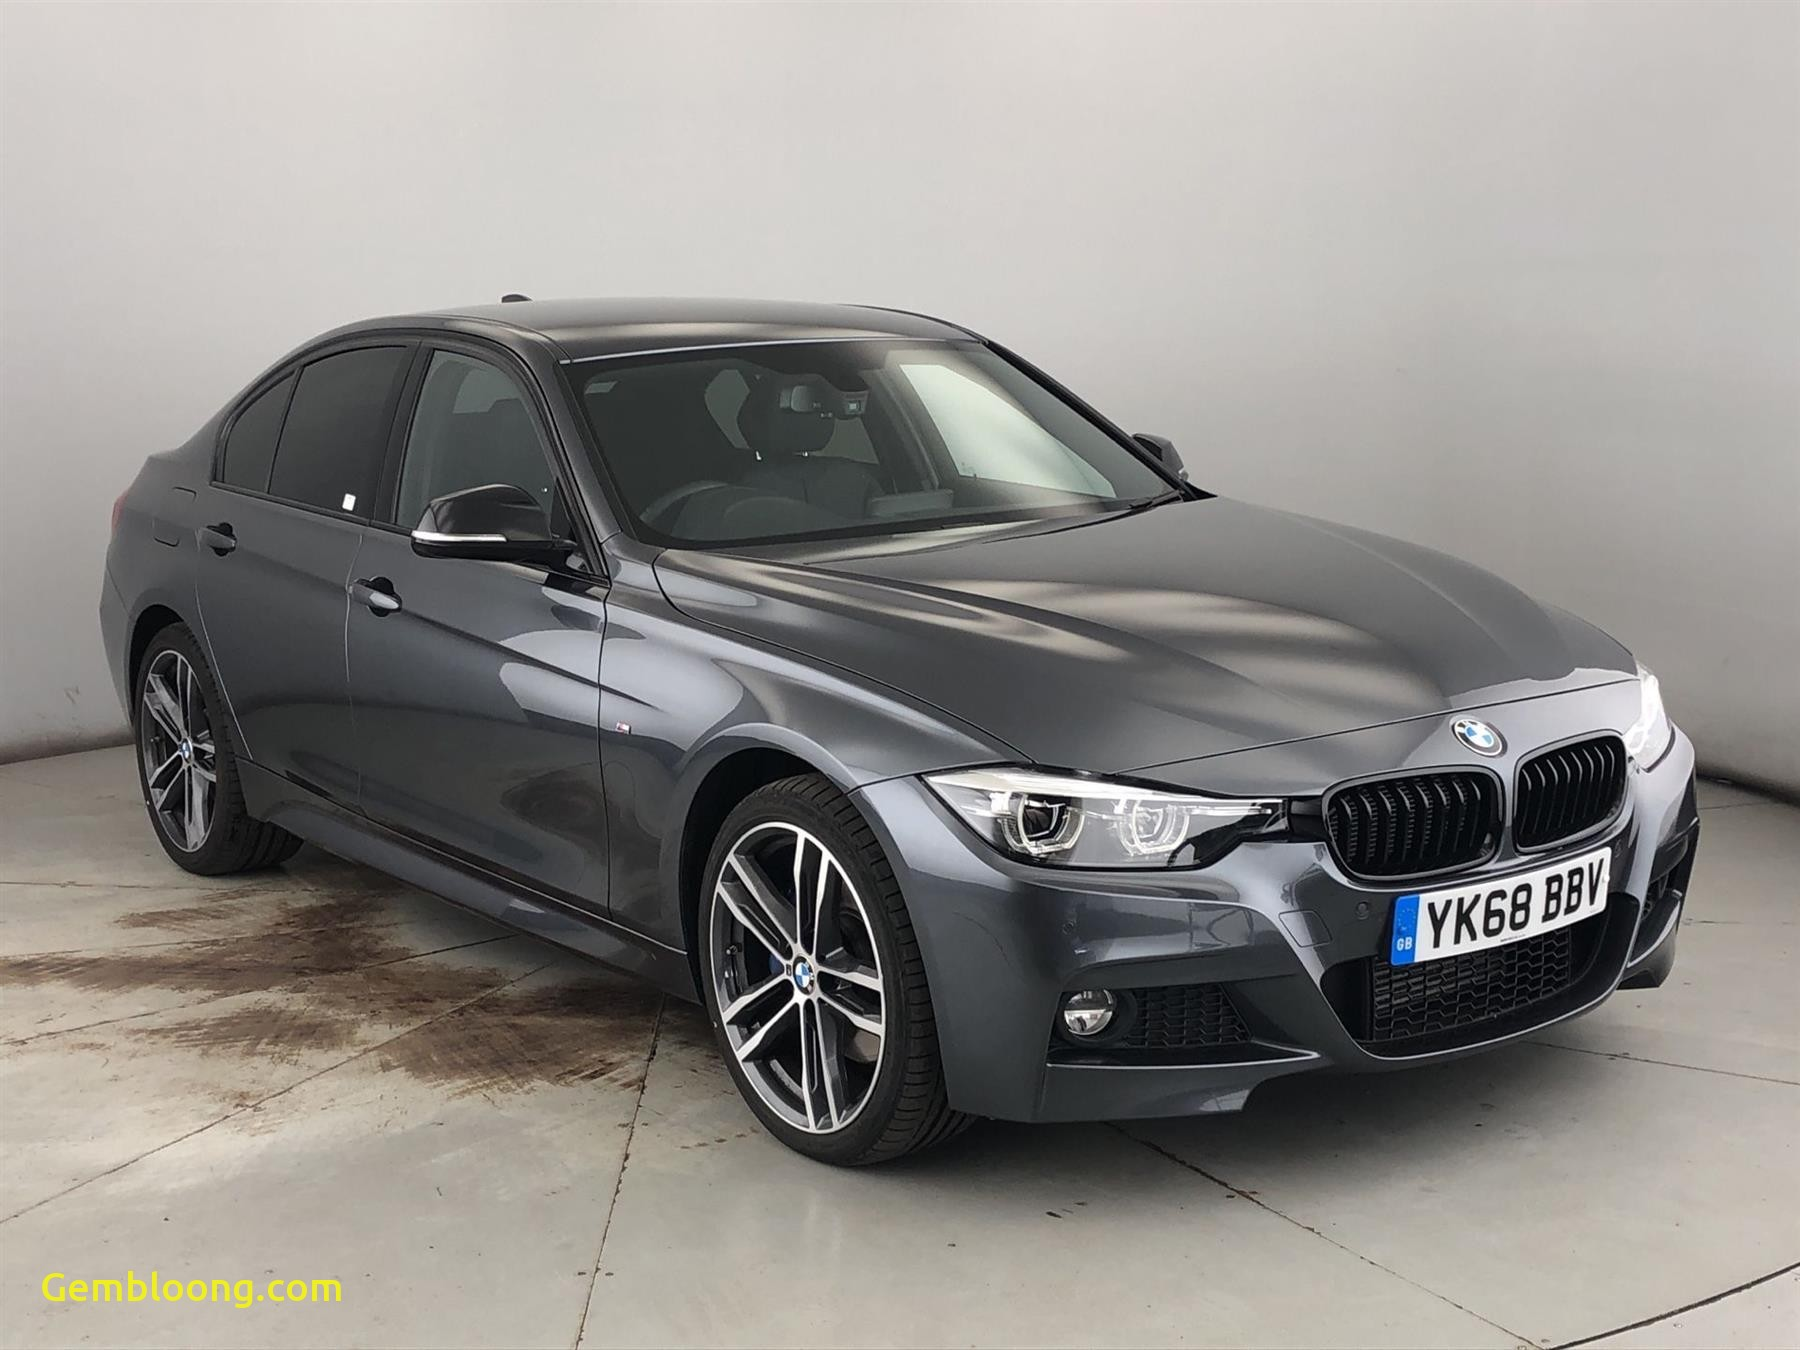 Bmw 3 Series for Sale Elegant Used 2018 Bmw 3 Series F30 320d Xdrive at M Sport Shadow